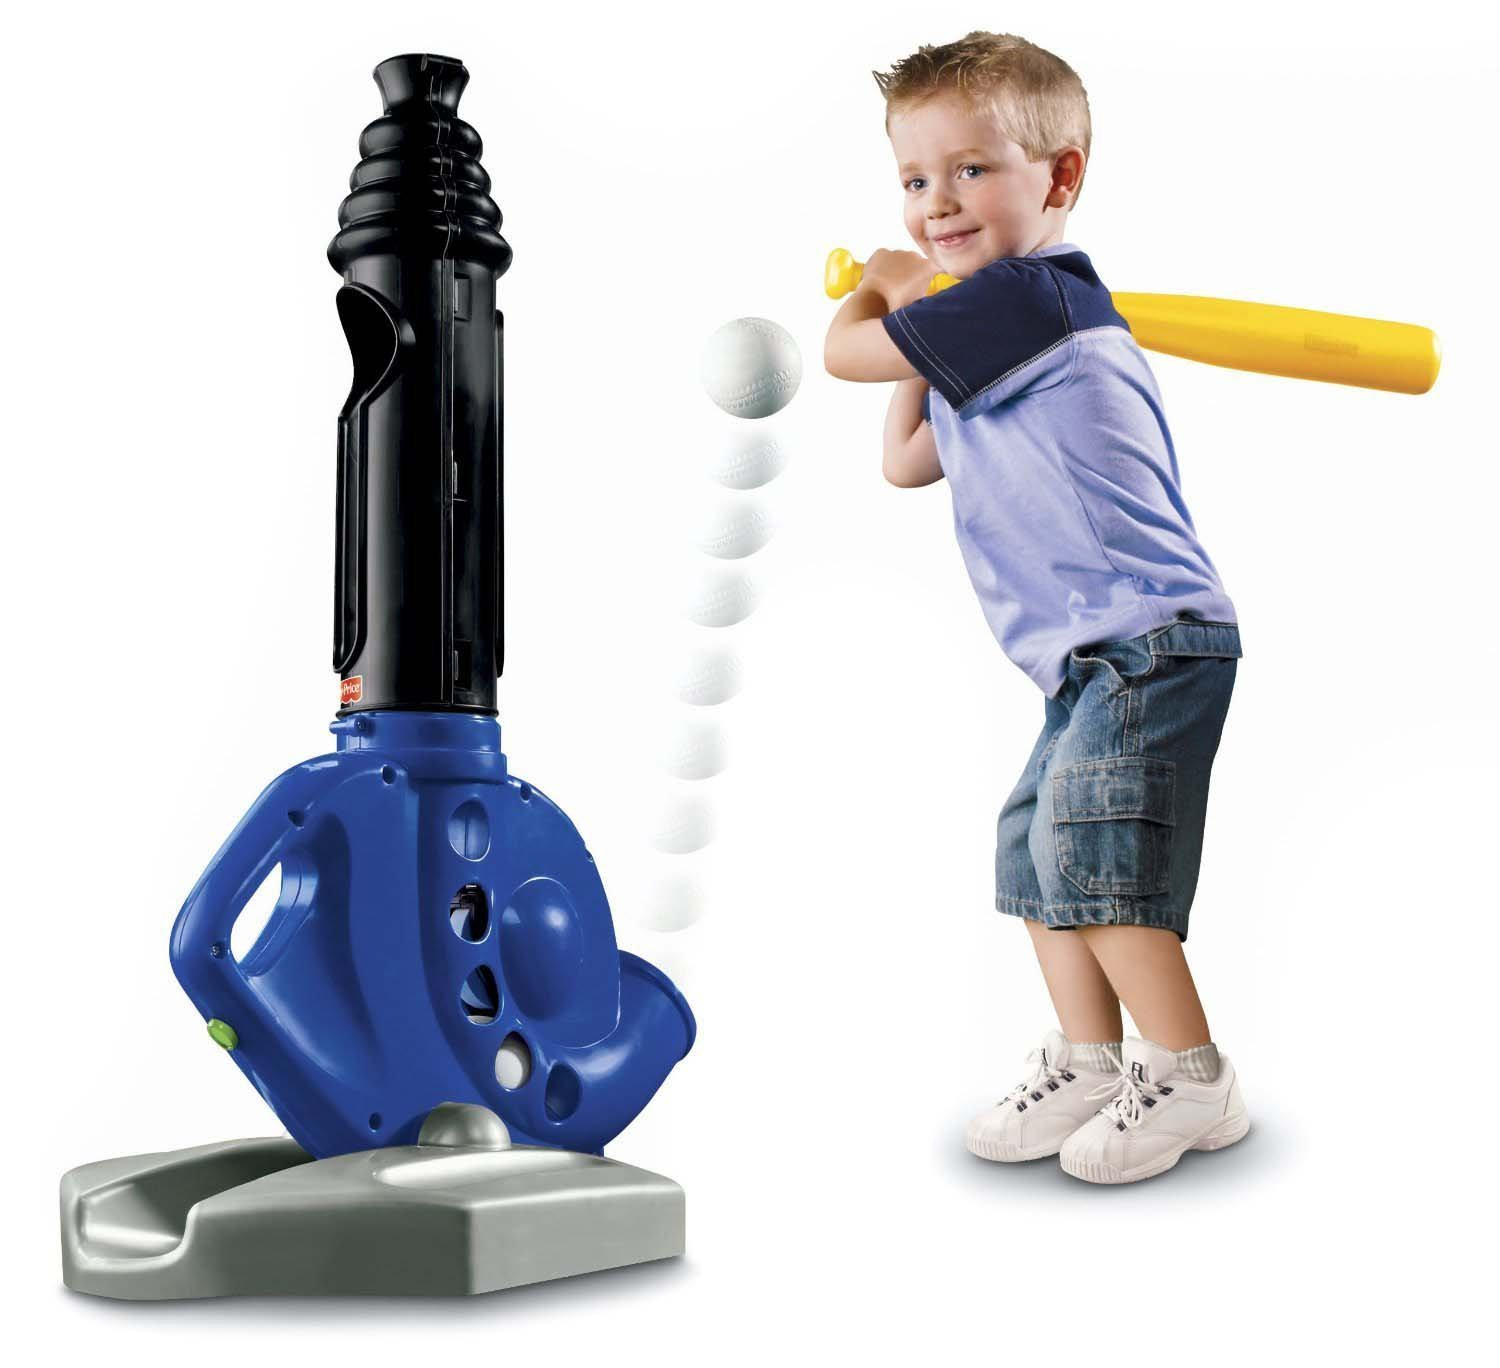 Toys For Boys 5 Years Old : Best gifts for year old boys in itsy bitsy fun